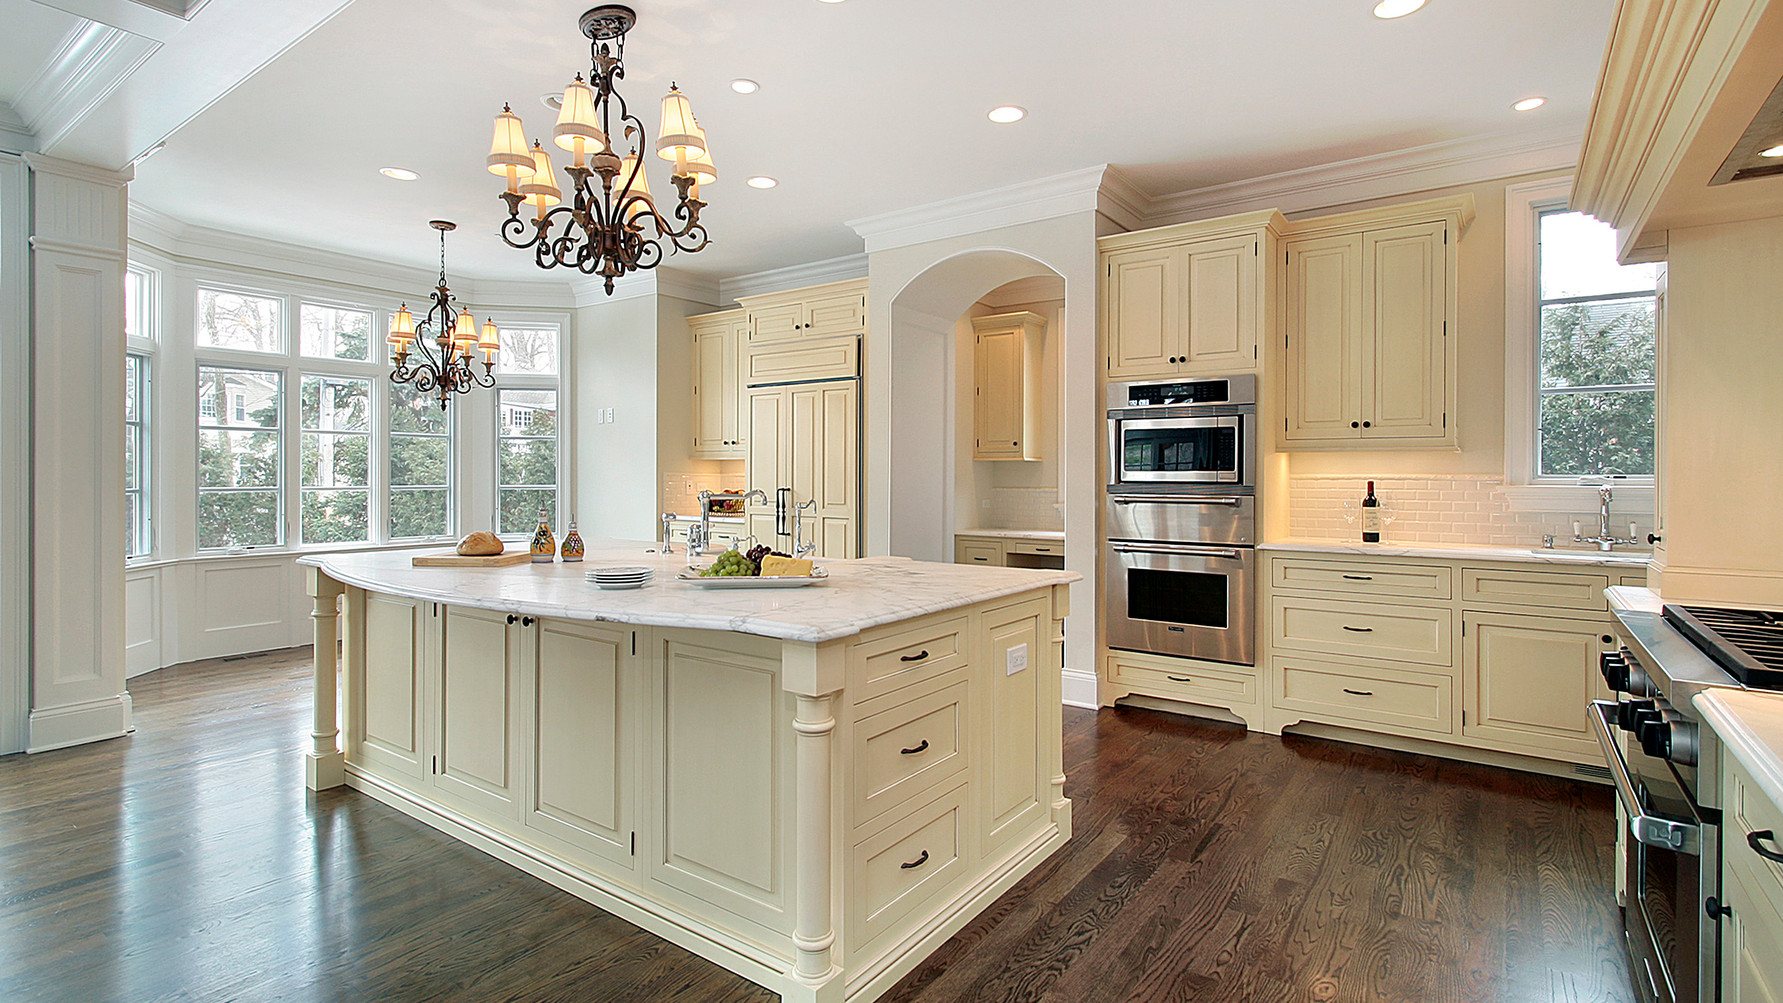 kitchen-in-new-construction-home-1265666